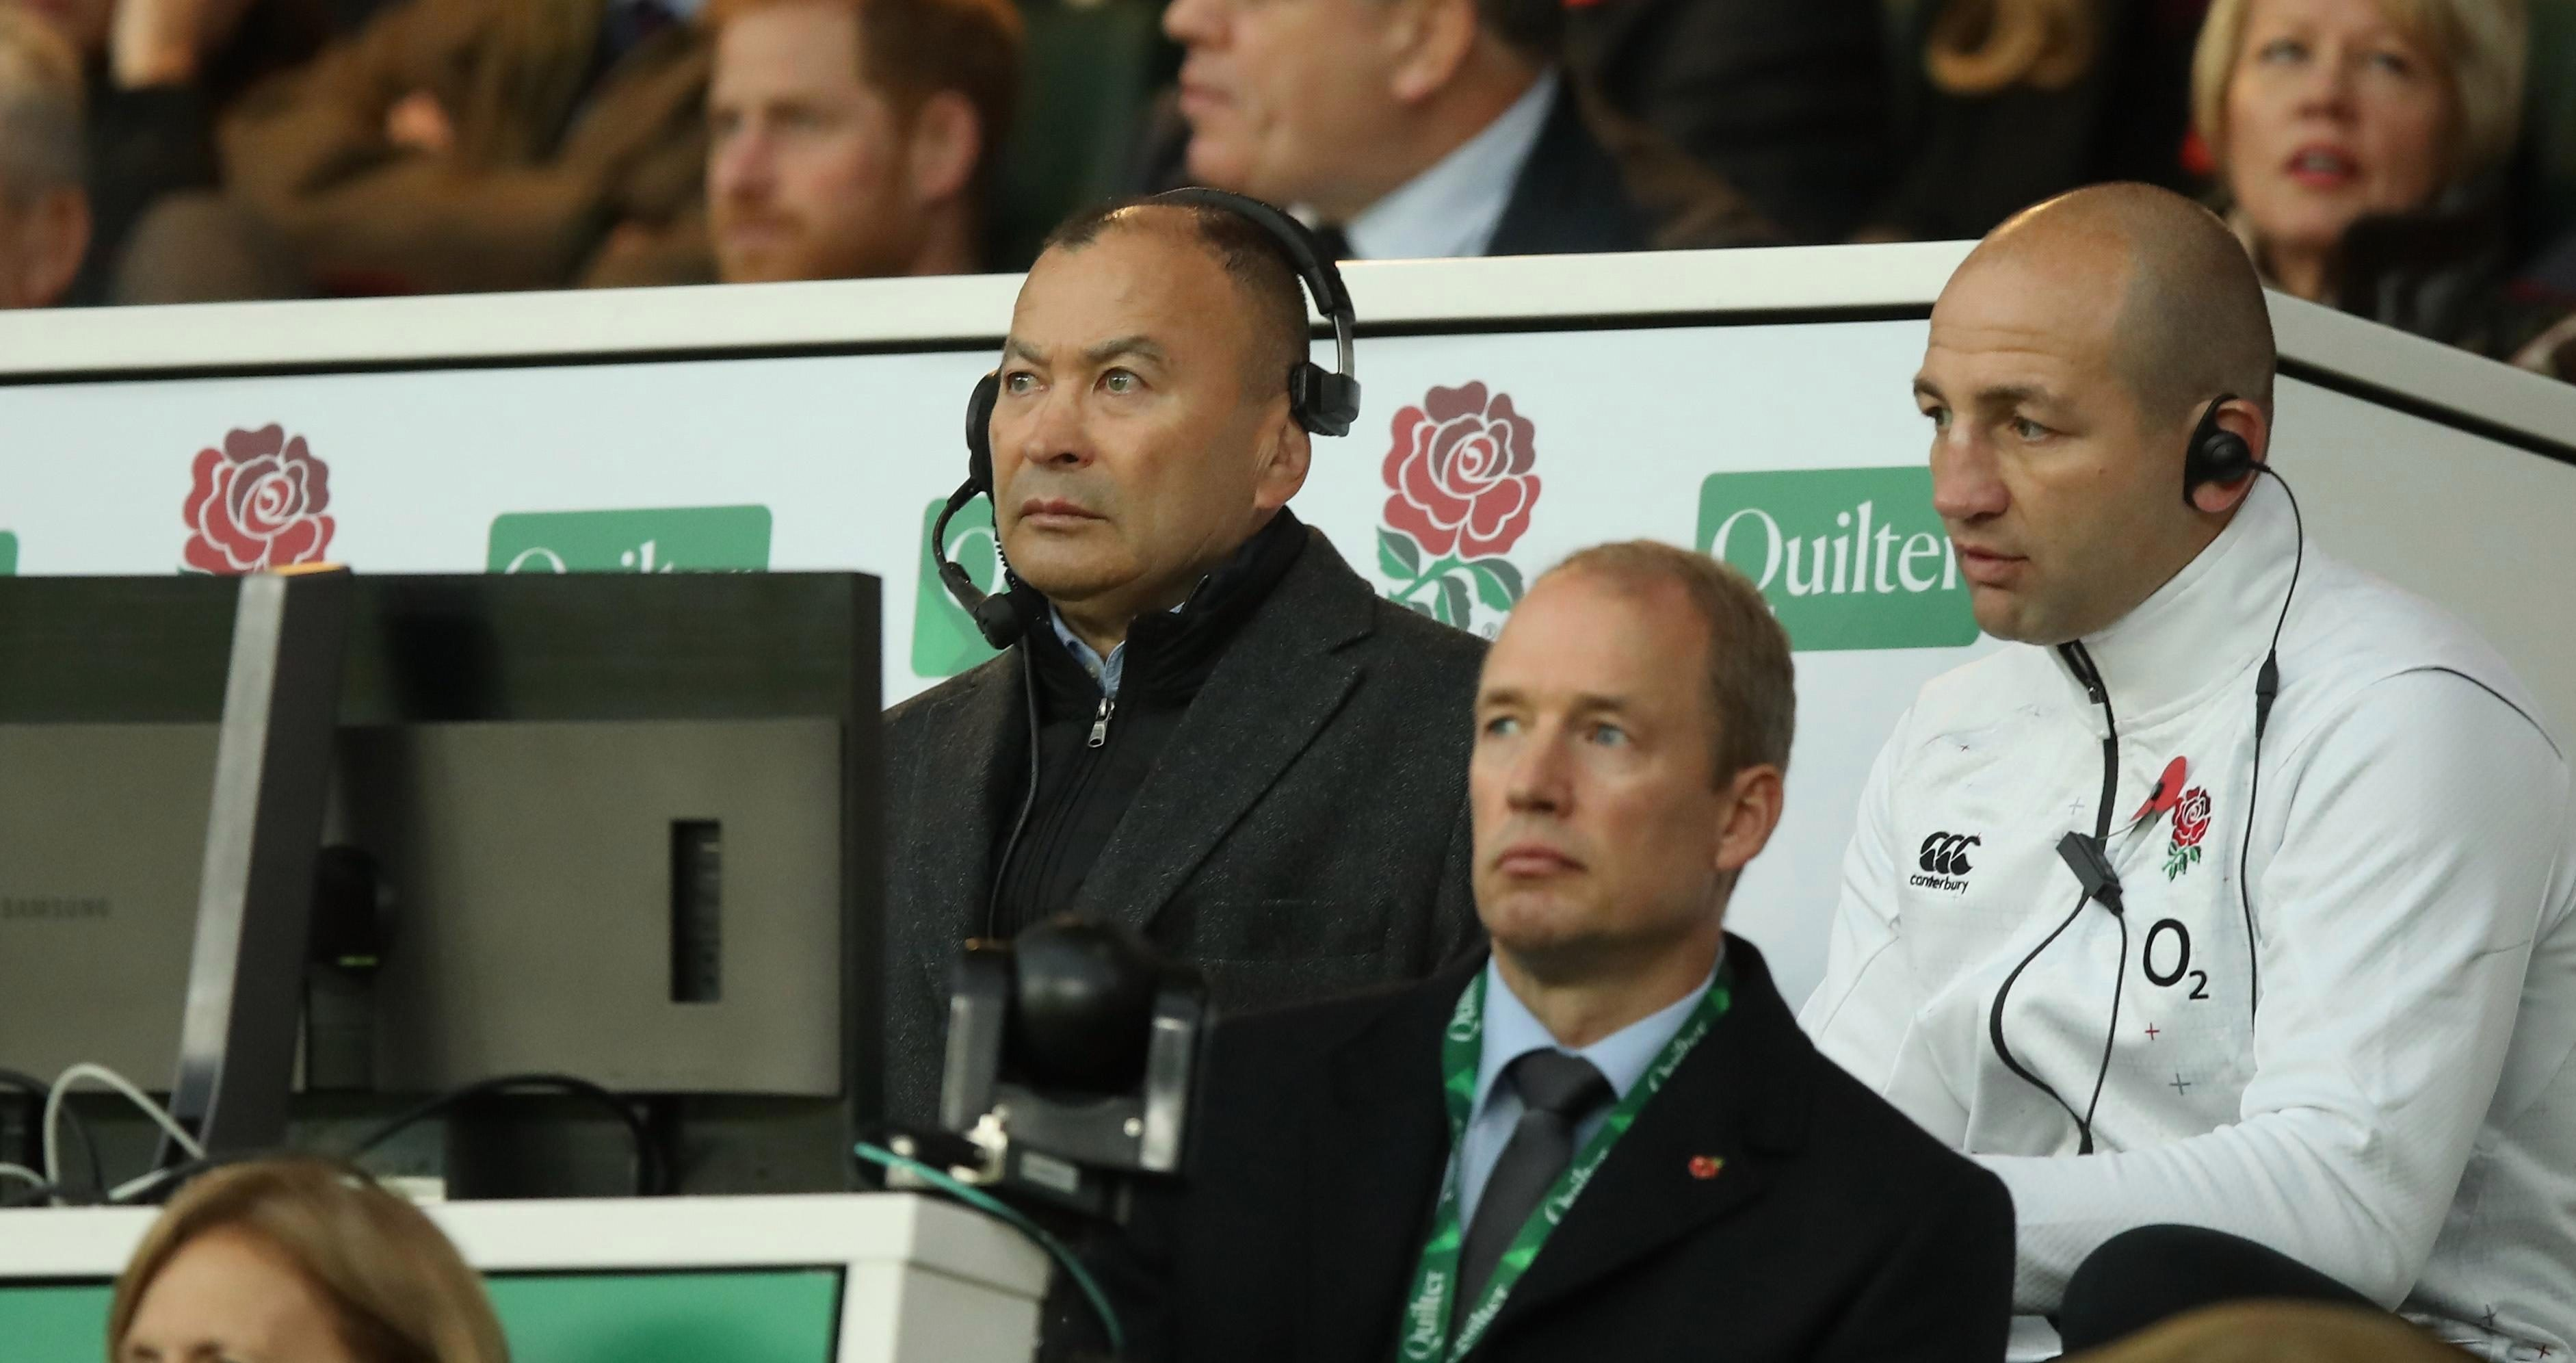 Woodward blasted Eddie Jones for giving his players too much control